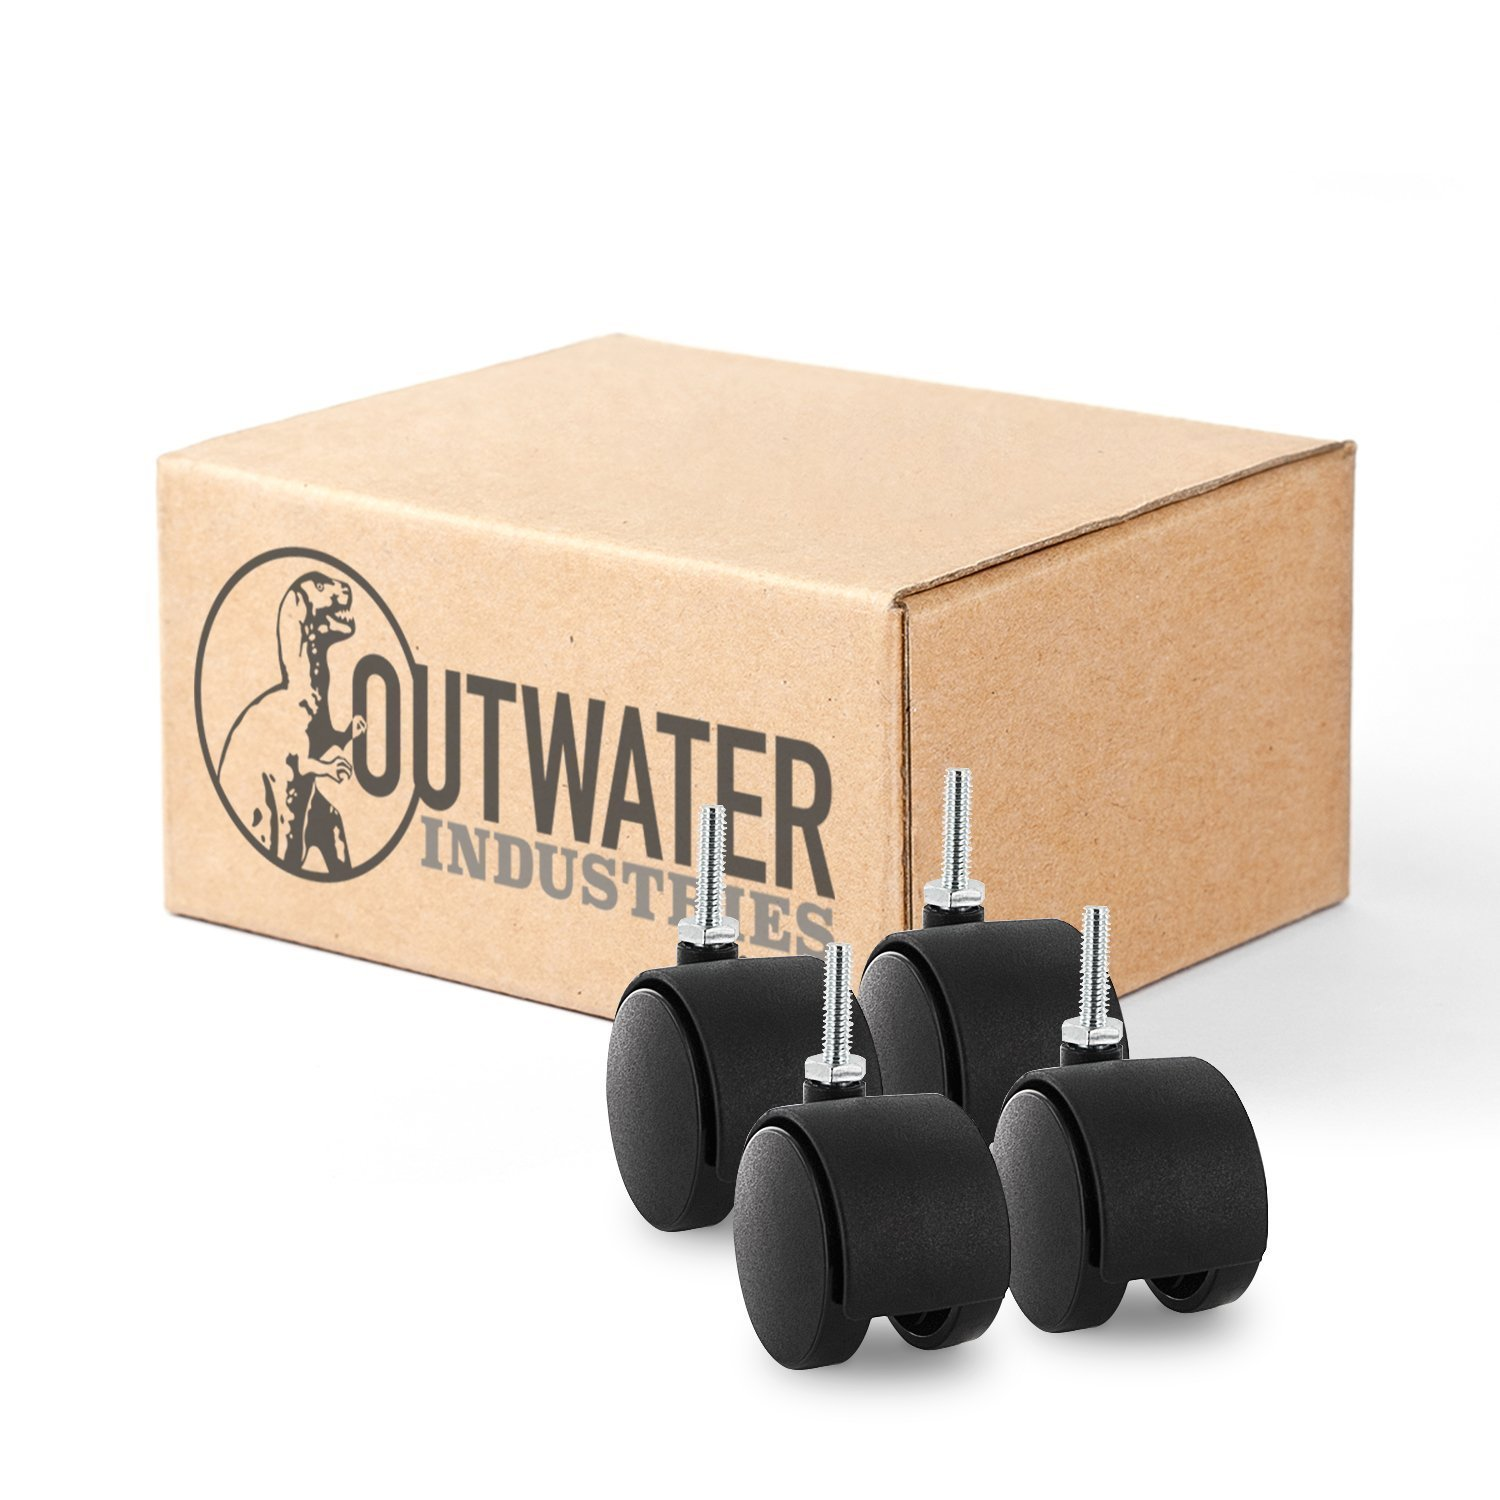 Outwater's Premium 2 inch Heavy Duty Gusset Reinforced Caster Wheels Without Brakes Samson SAMS 4 BK with 1 4 20 x 1 Threaded Stem